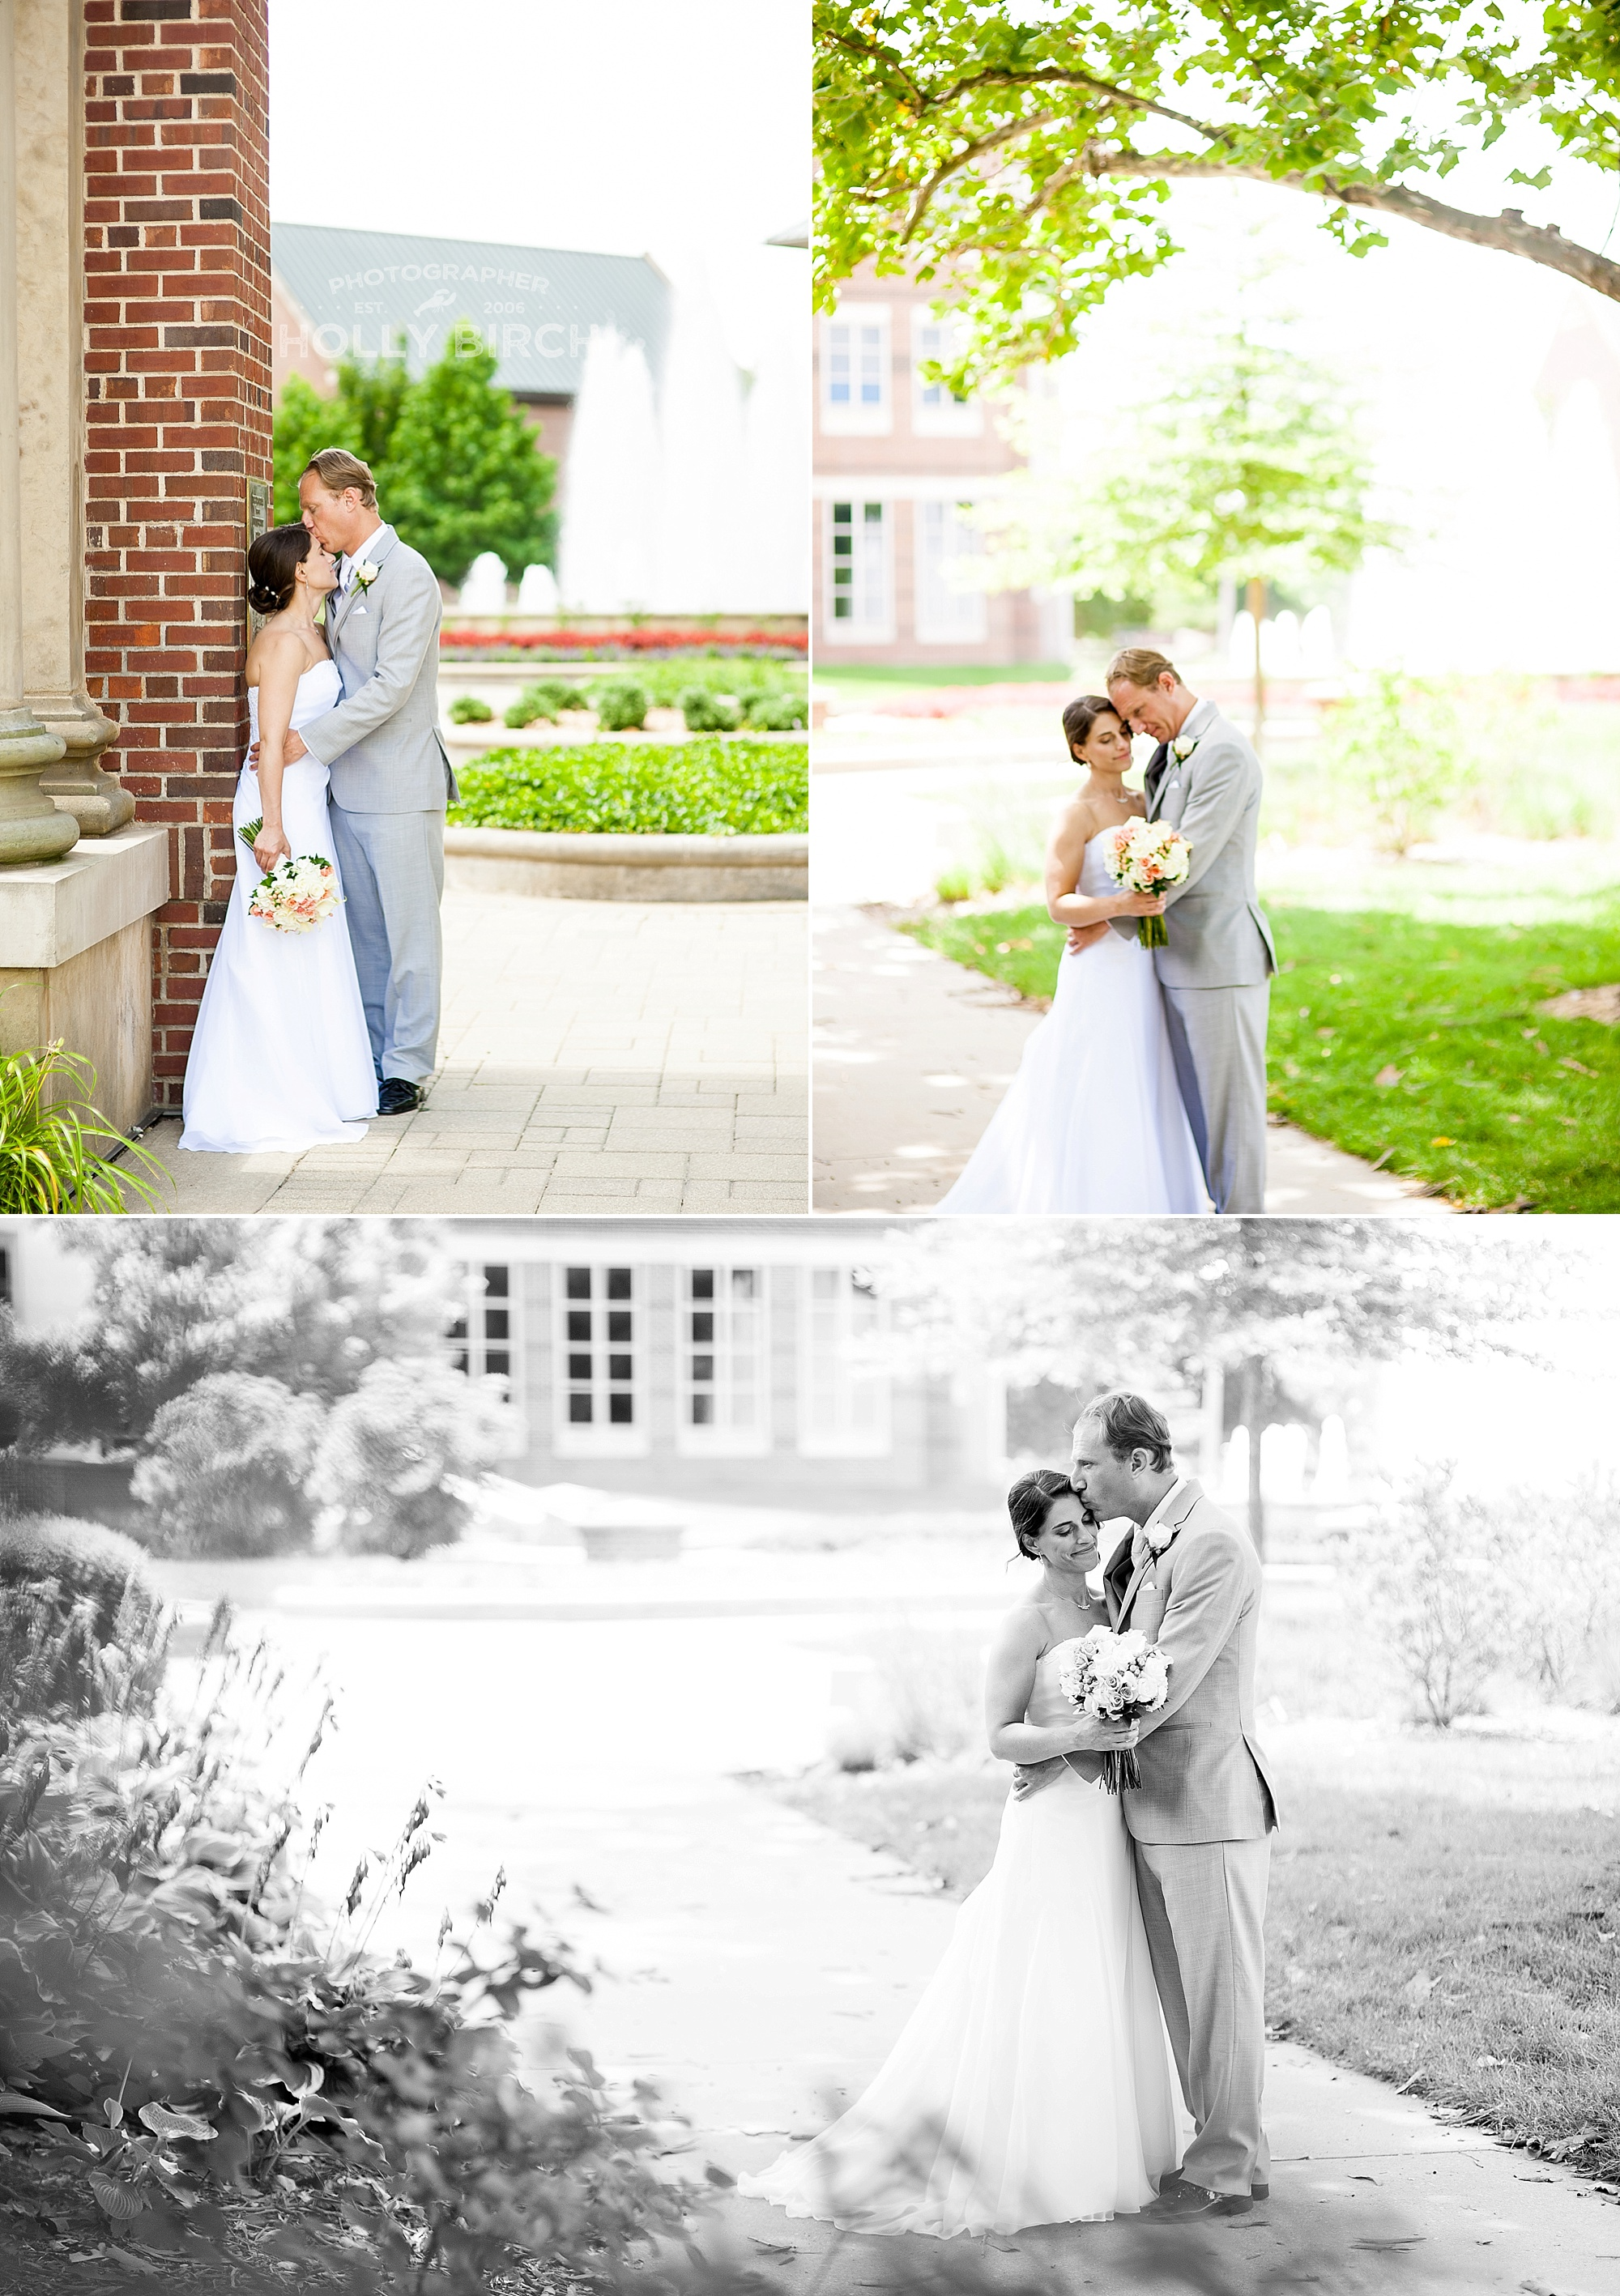 Hallene Gateway wedding portraits